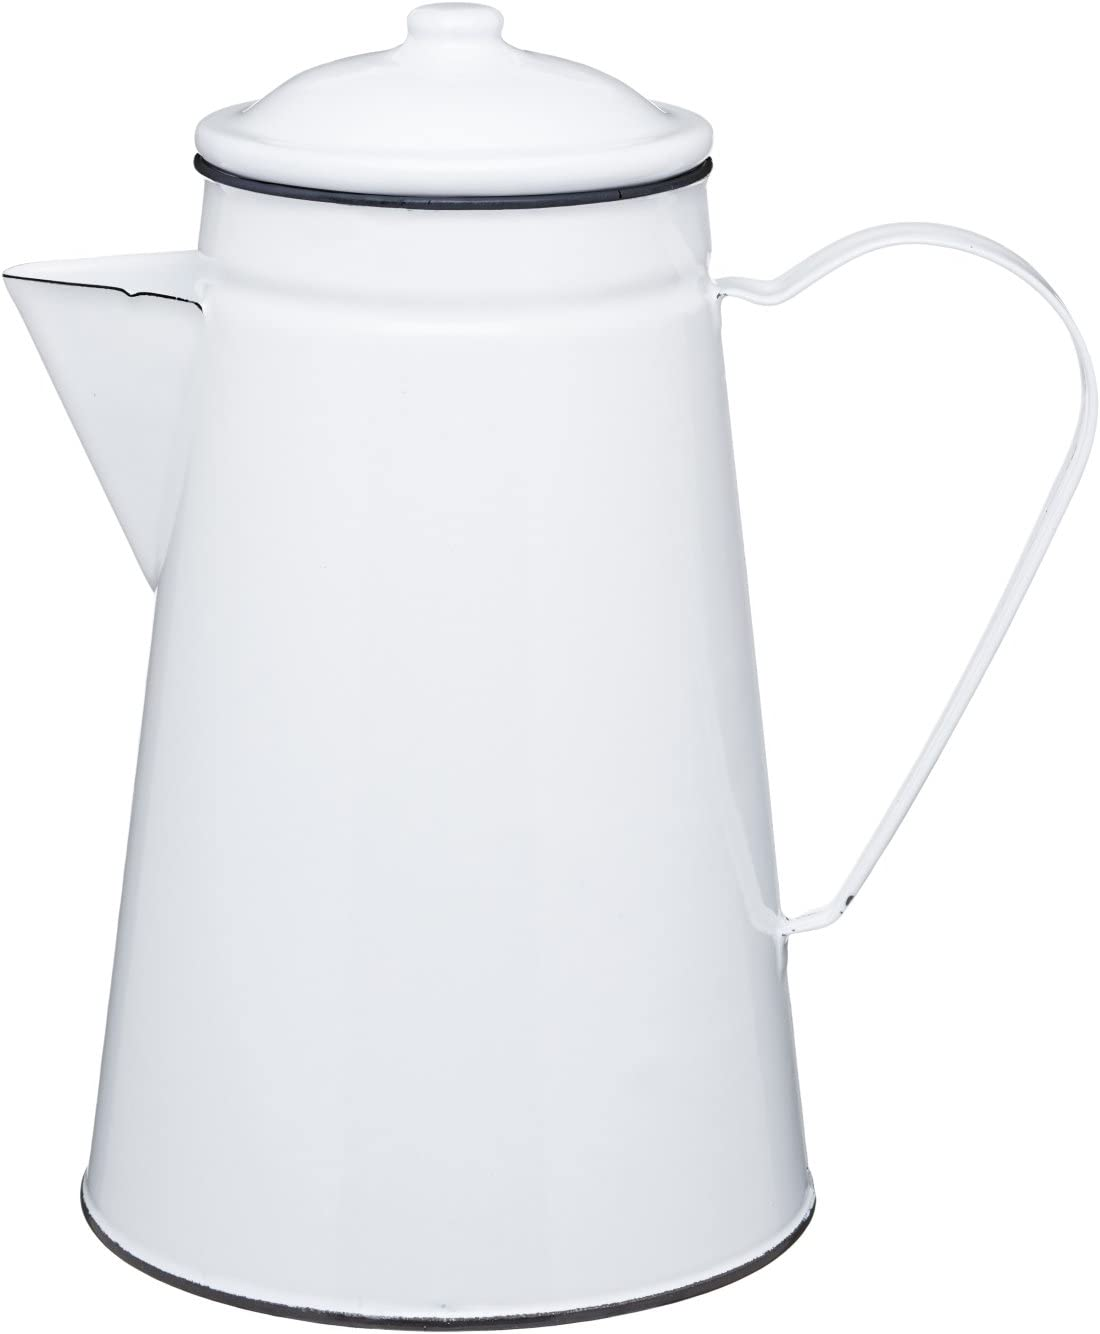 Kitchen Craft Living Nostalgia Jug Cafetera/Jarra/Jarrón de Esmalte, Blanco, 19.5 x 15.5 x 22.5 cm: Amazon.es: Hogar